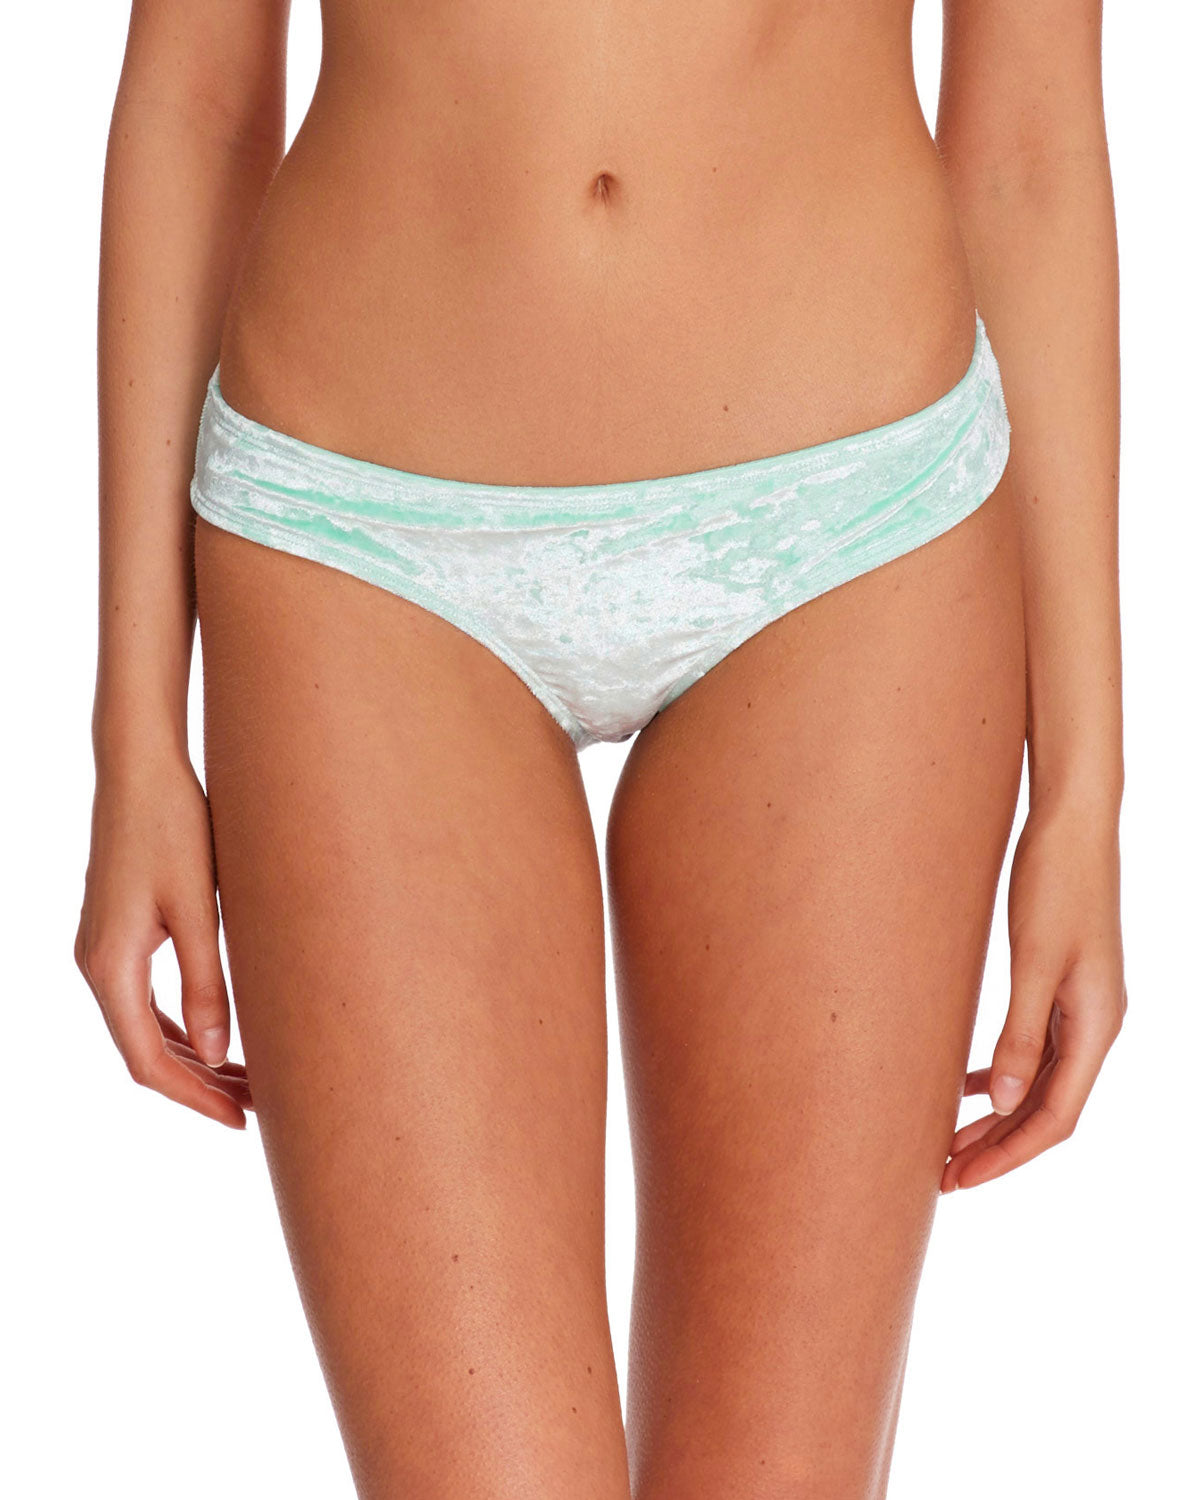 Keri Velvet Lola Swim Bottom - Seafoam